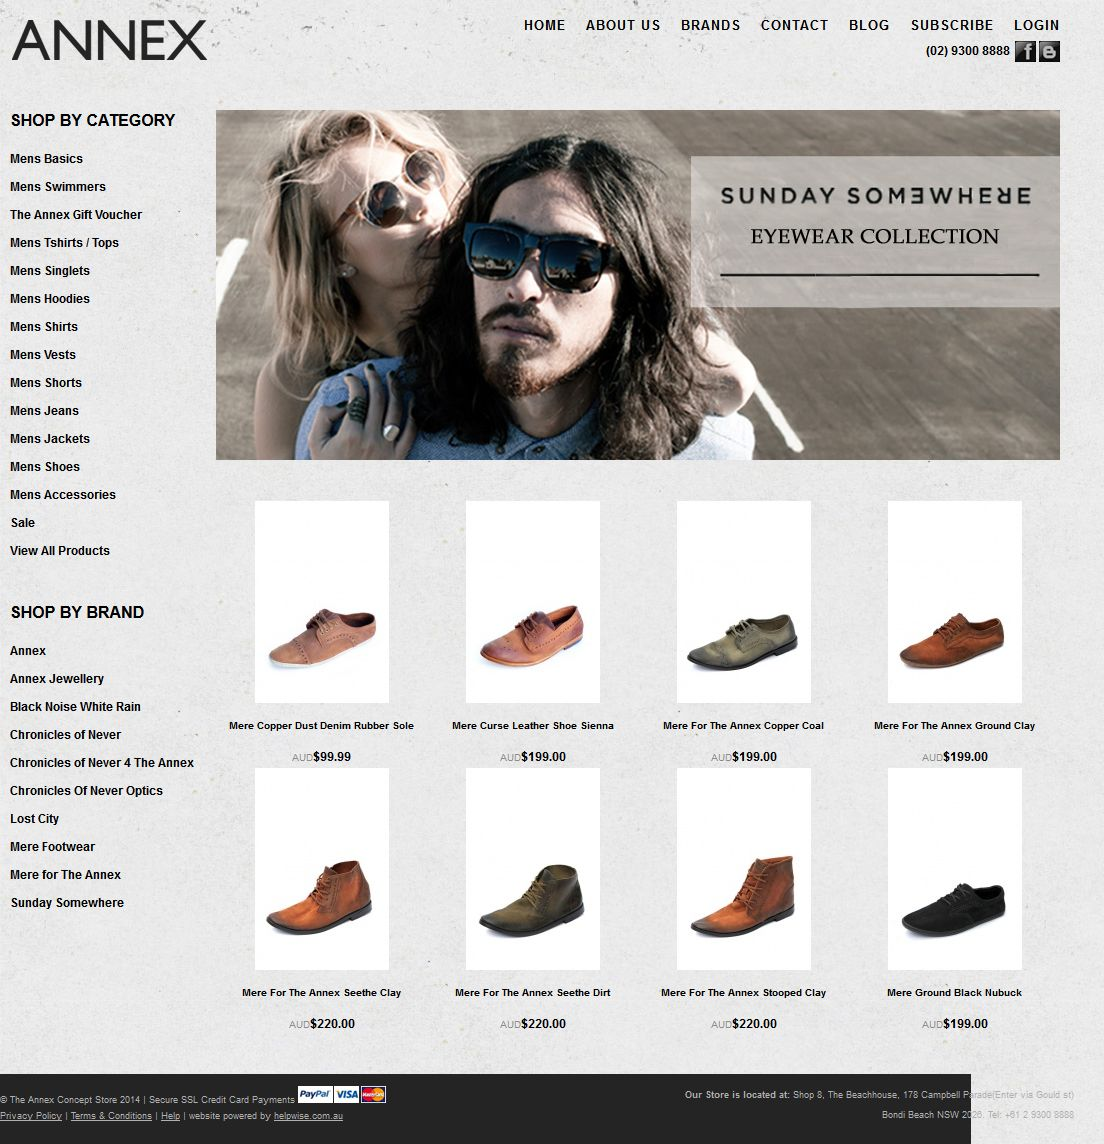 The Annex Fashion Store